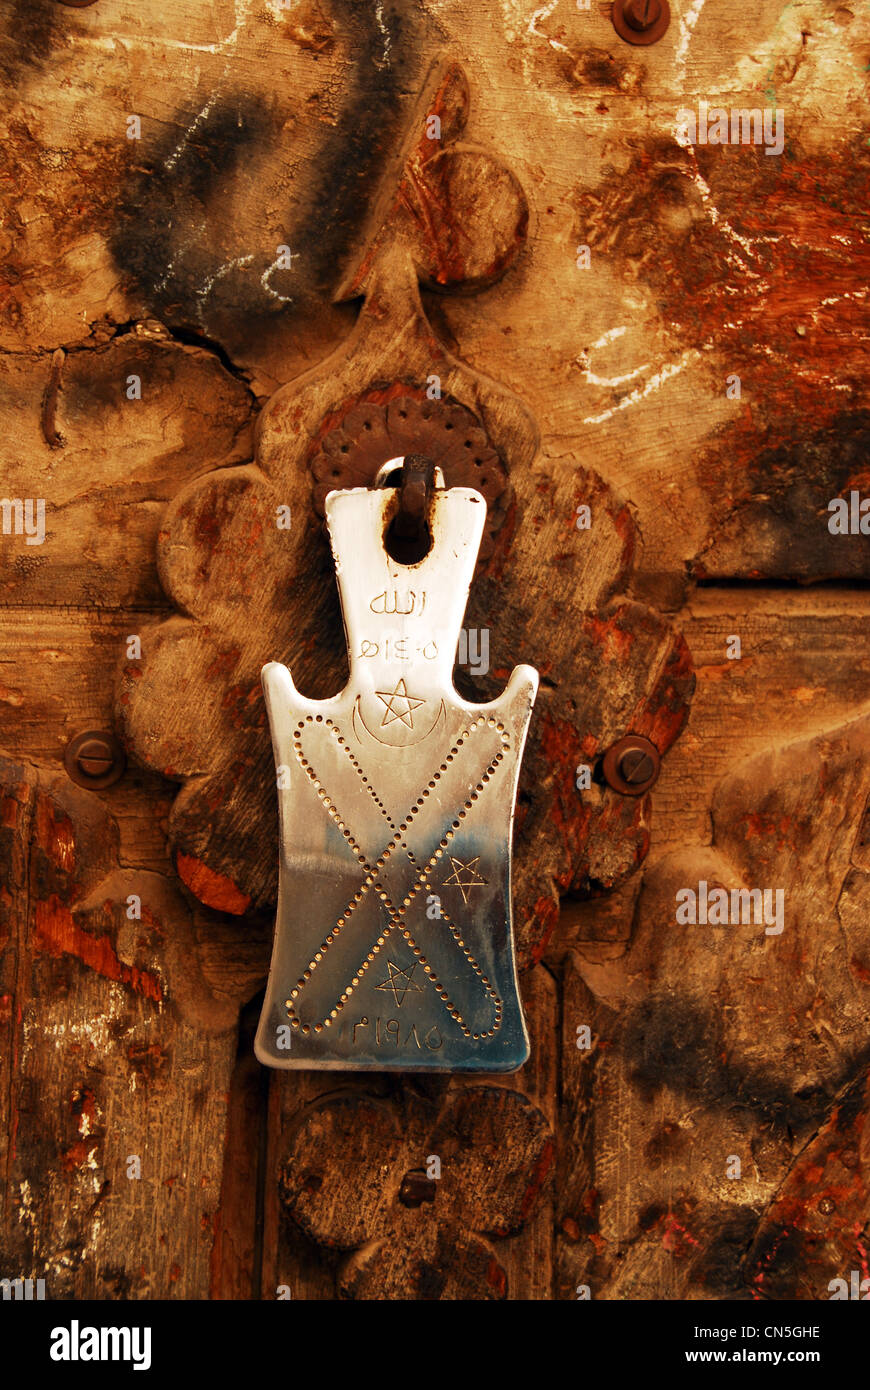 Yemen, Sanaa, old town listed as World Heritage by UNESCO, close-up of rusty closed old door - Stock Image